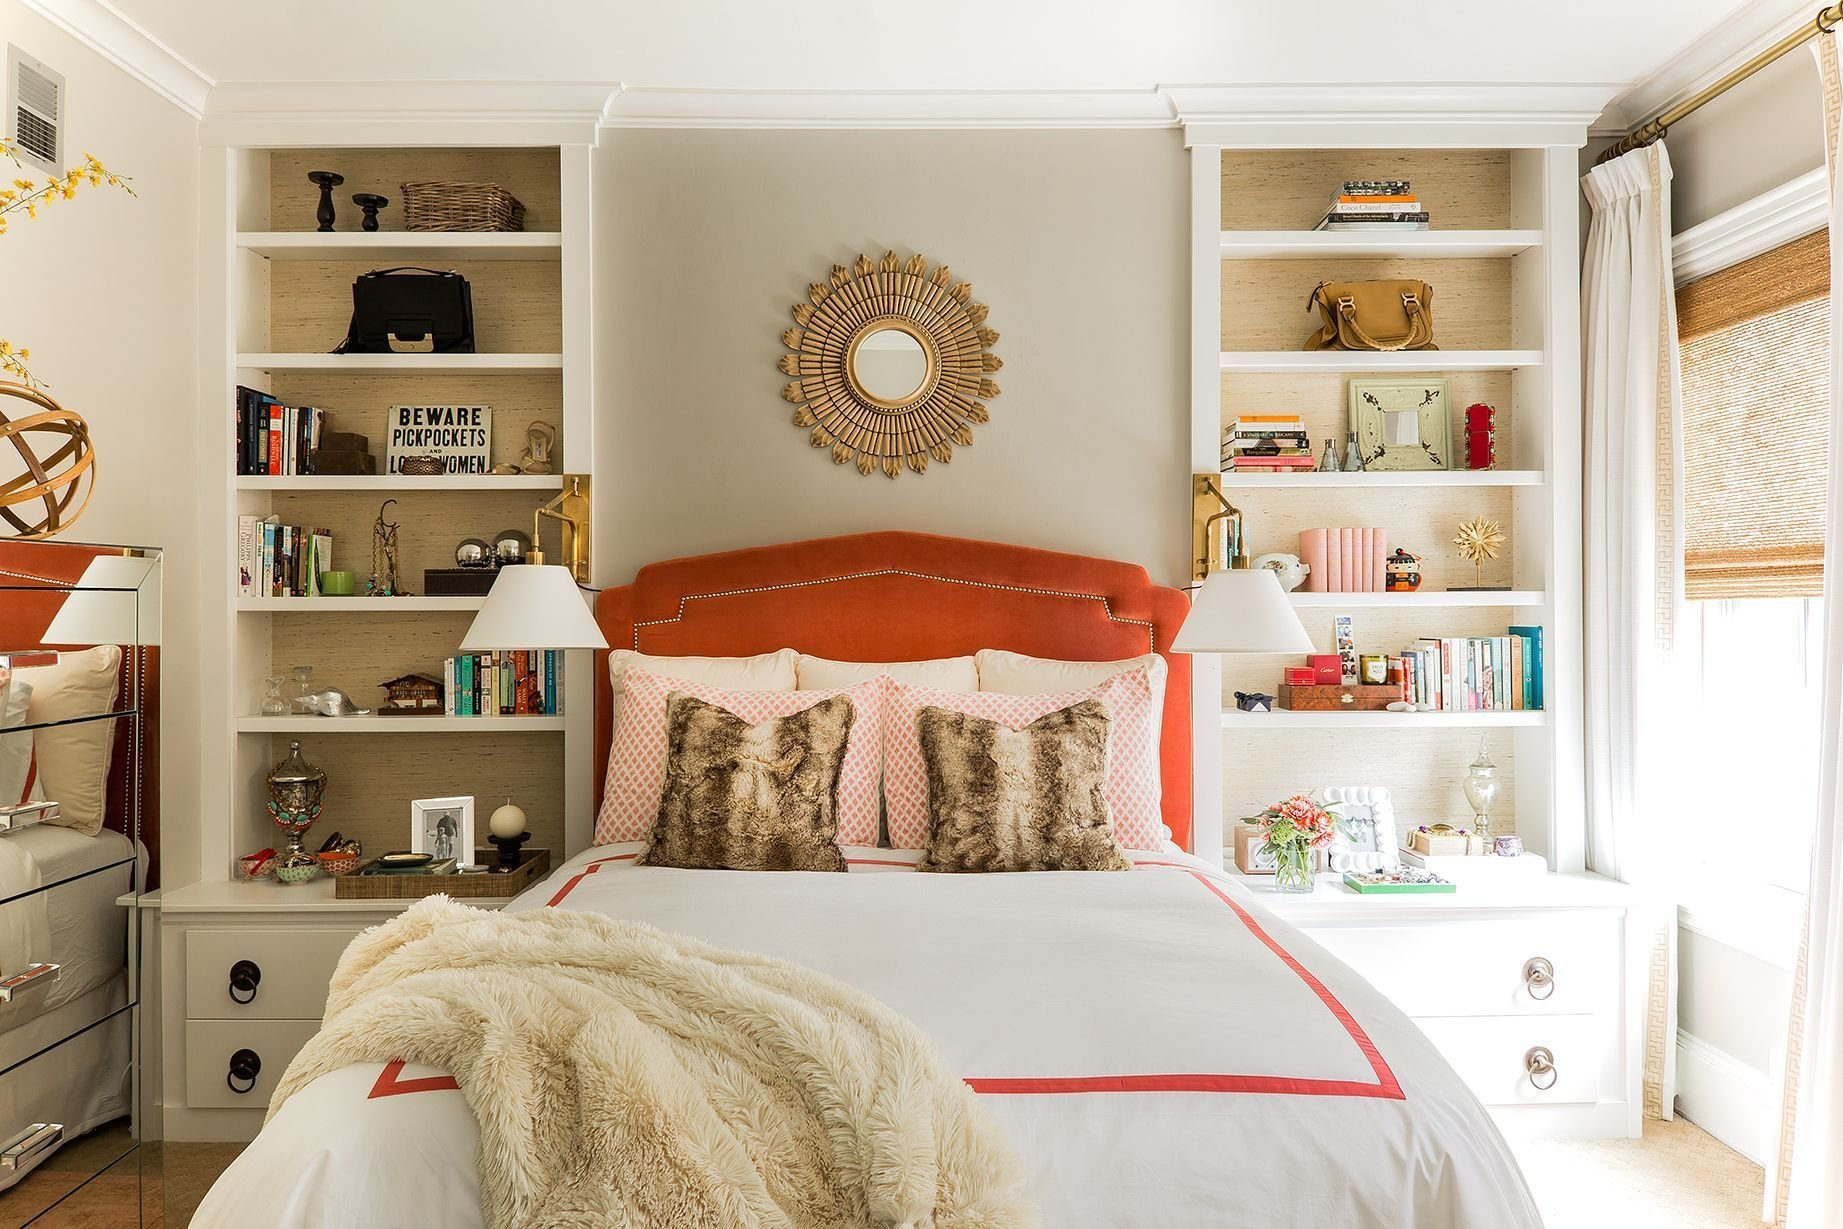 Best 17 Small Bedroom Design Ideas How To Decorate A Small With Pictures